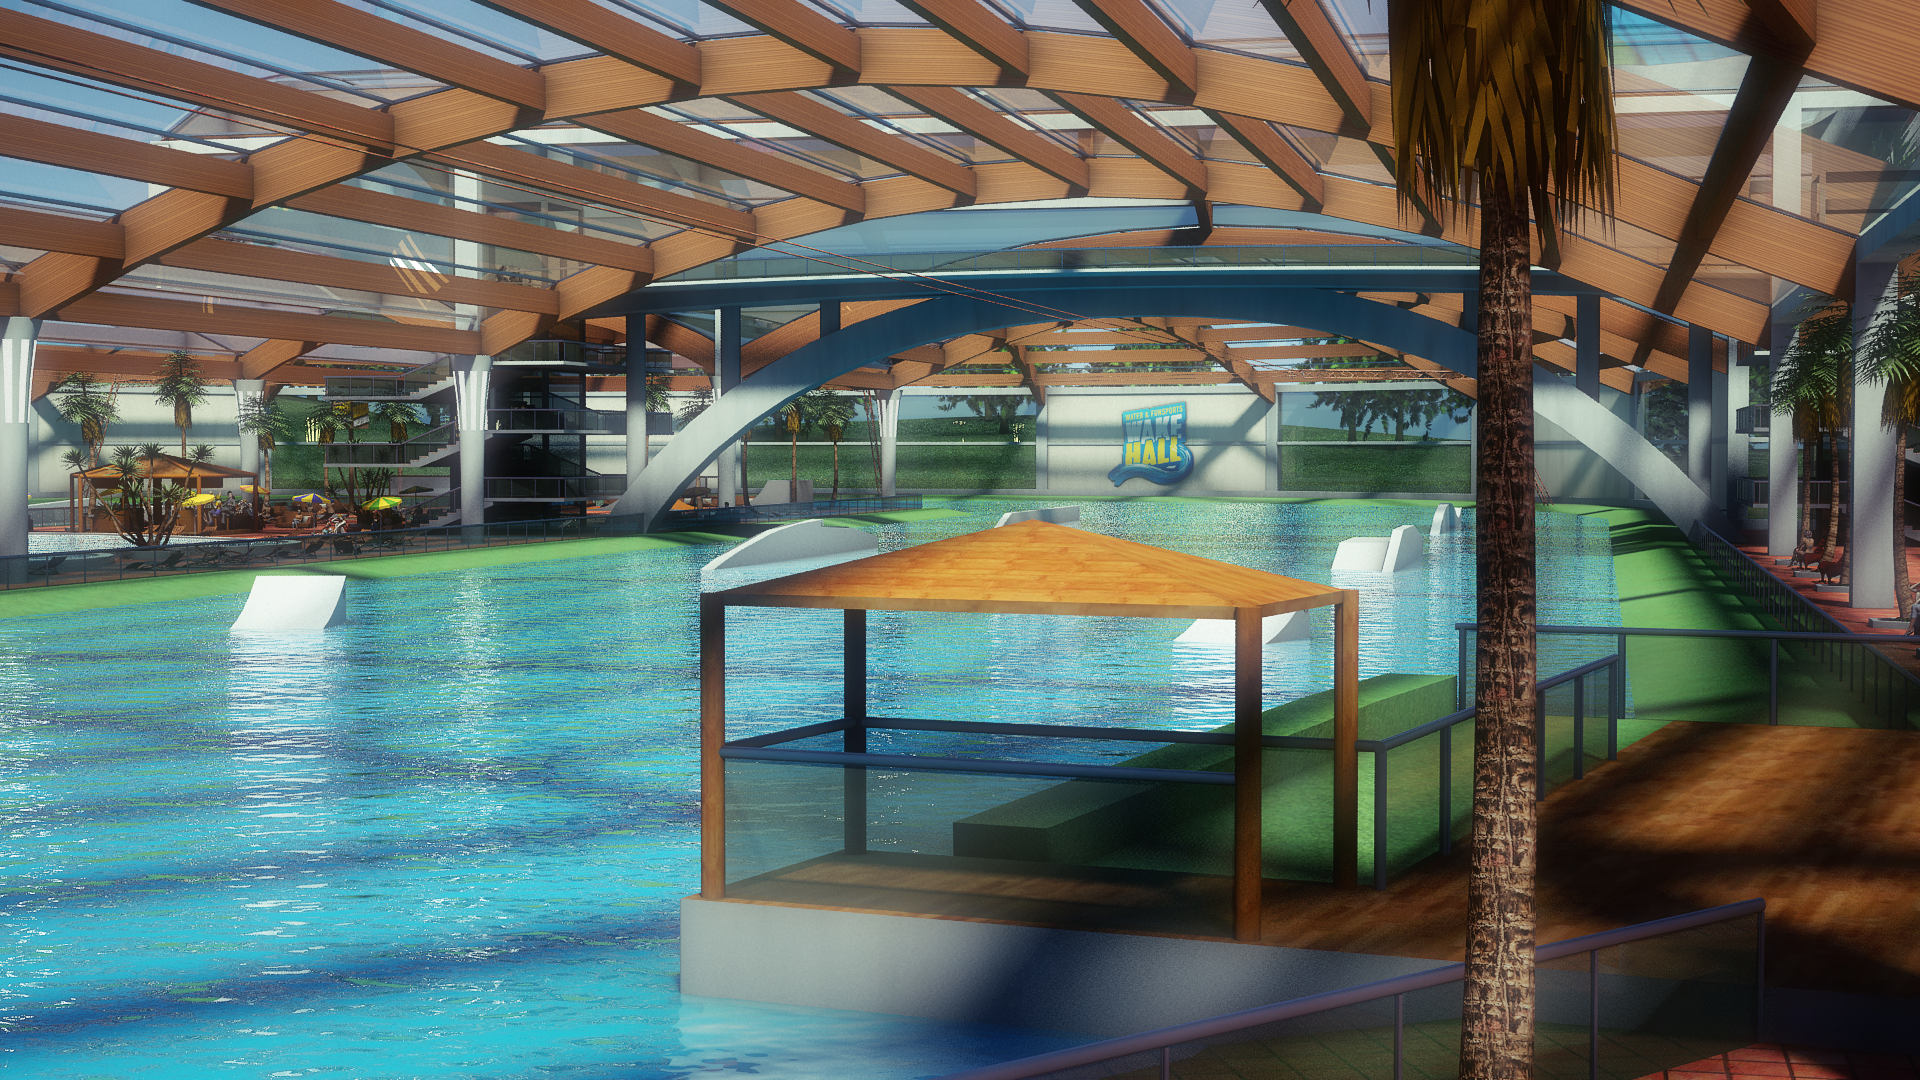 The World\'s First Indoor Wake & Funsport Hall | Indiegogo